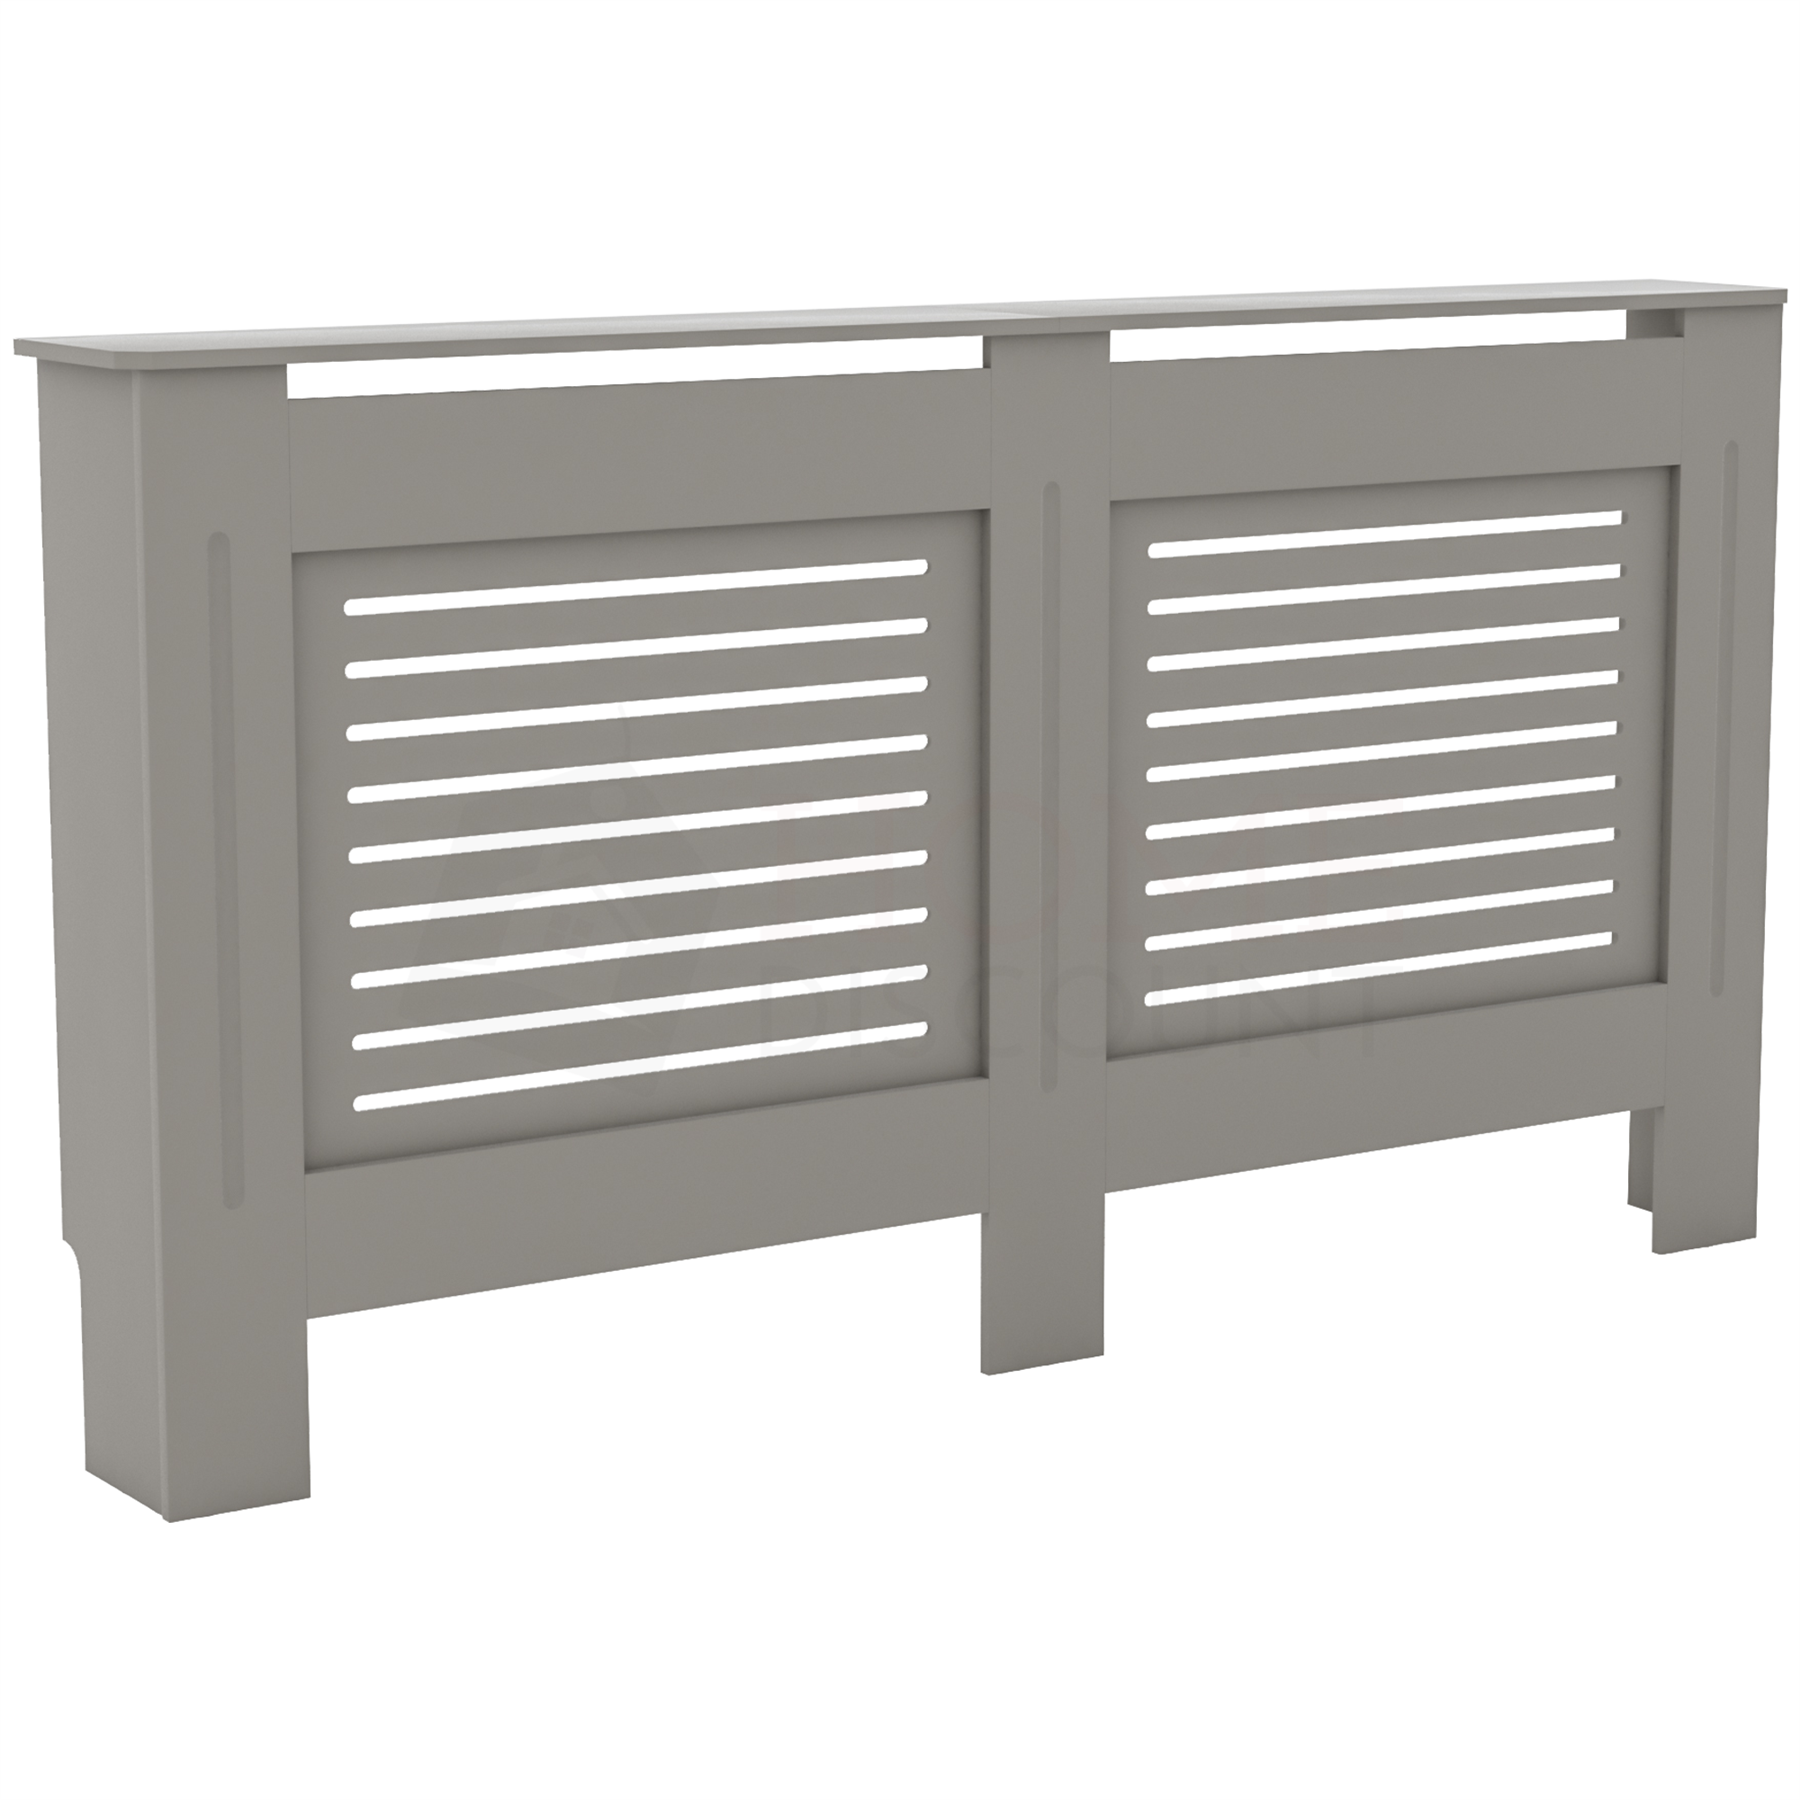 Radiateur-Housse-Blanc-inachevee-MODERNE-BOIS-TRADITIONNELLE-Grill-cabinet-furniture miniature 161